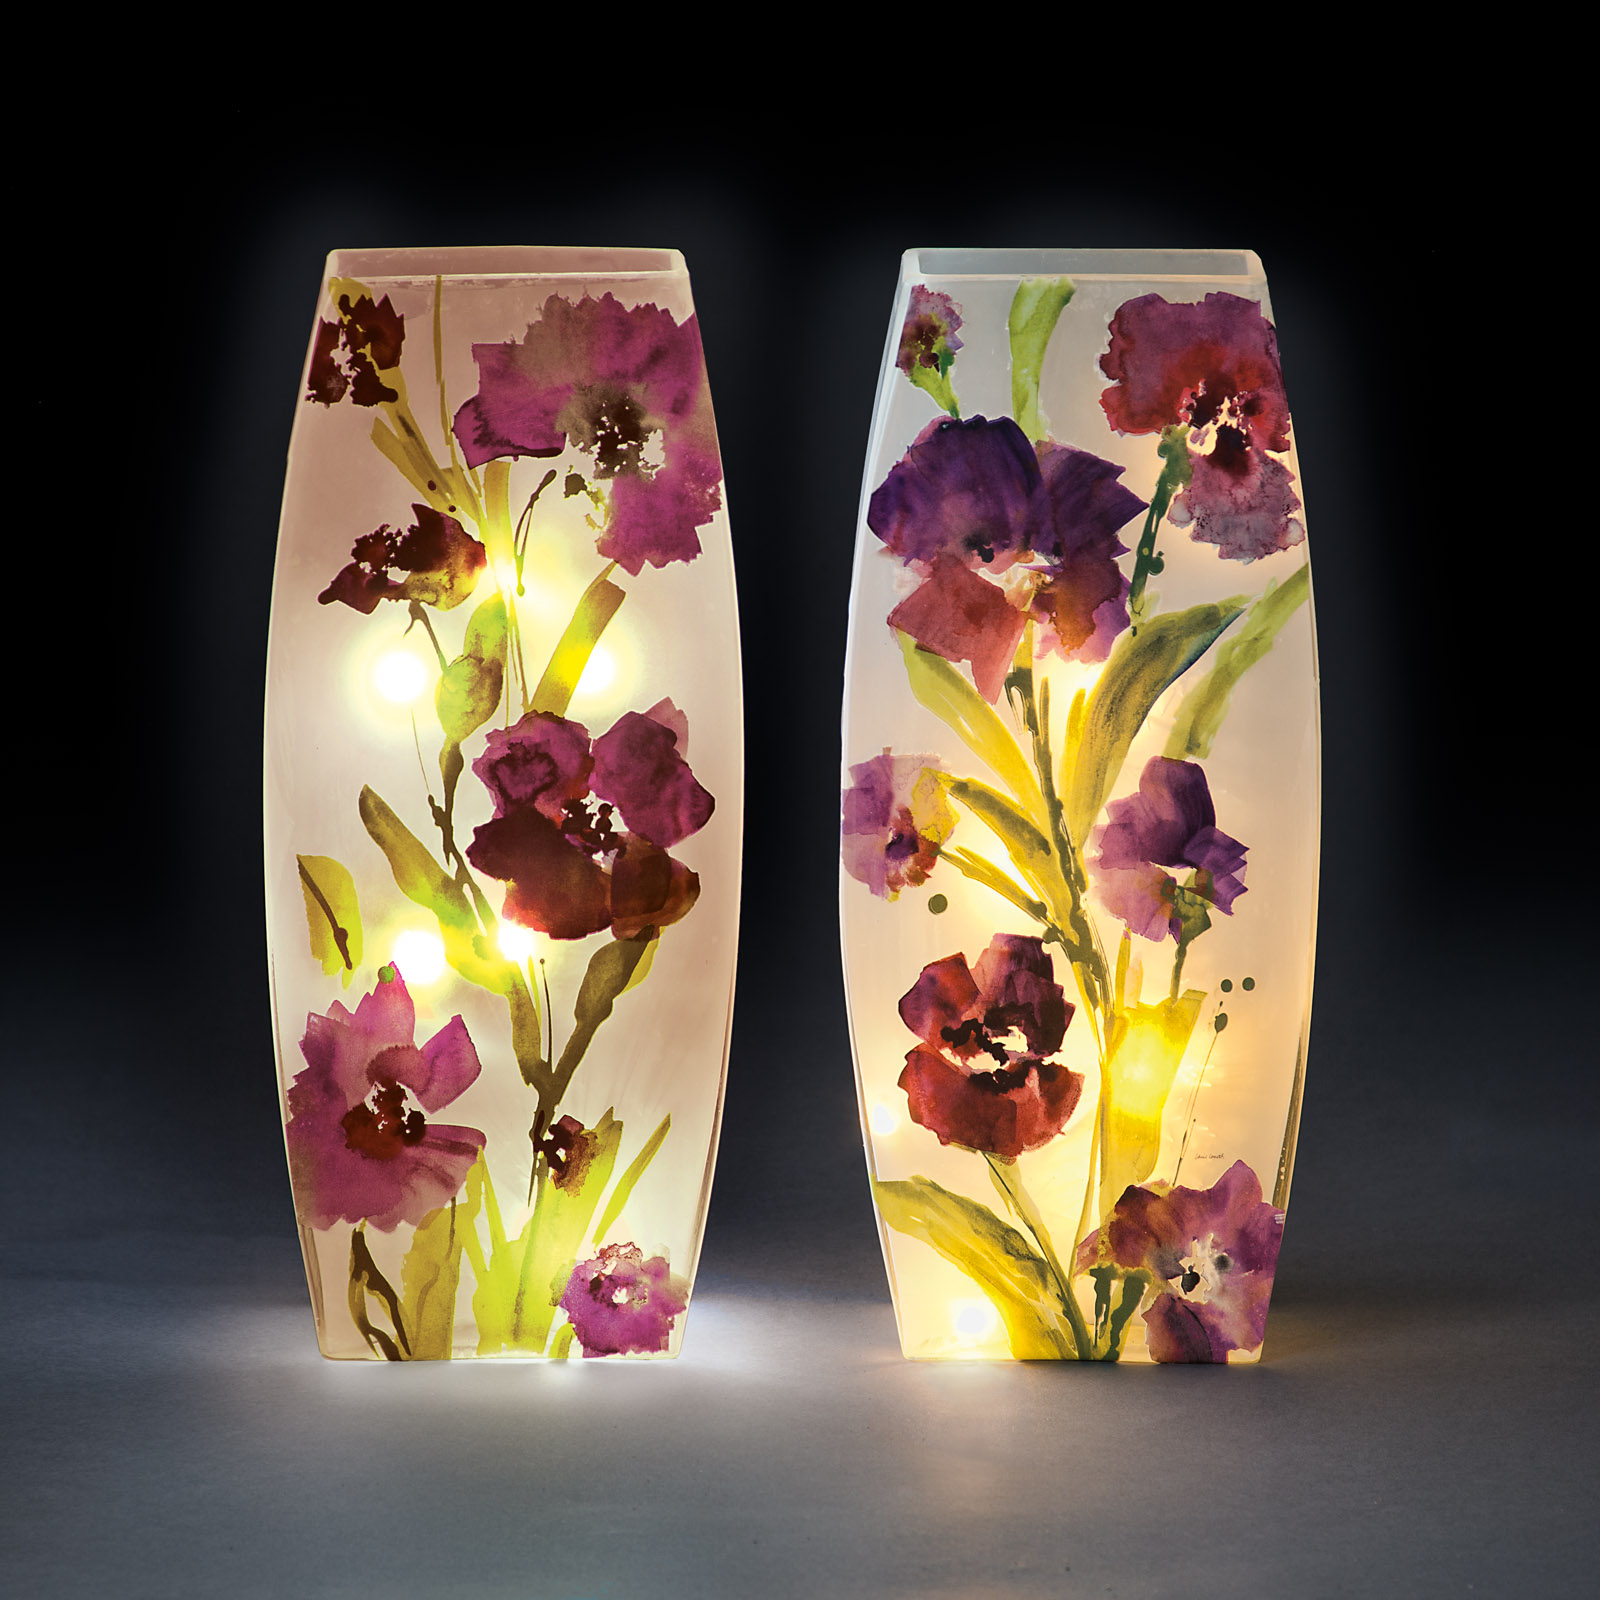 Glass Oval Illuminated Vase with Purple Flower Design